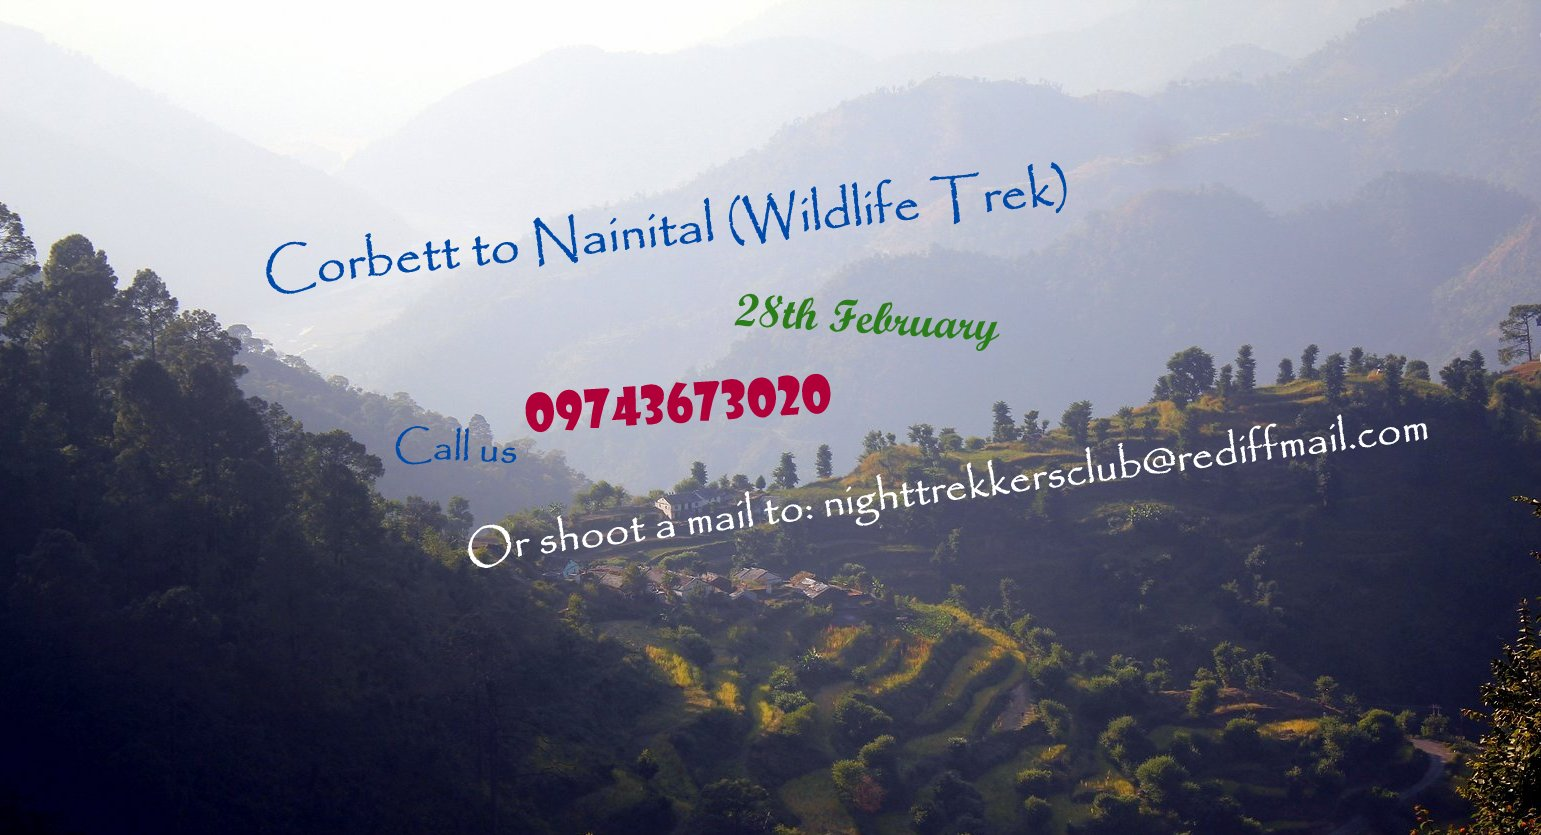 Book Online Tickets for Corbett To Nainital (Wildlife Trek), Nainital. Region: Kumaon foothills of Nainital district, Uttarakhand Duration: 04 days/03 nightsAltitude: 450 m to 2500 m.Temperature: 02 DegreeC in winter, 27 Degree C in Summer Season: October to MarchGrade: ModeratePrice: 9975/- Per Person (Ex-Delhi)